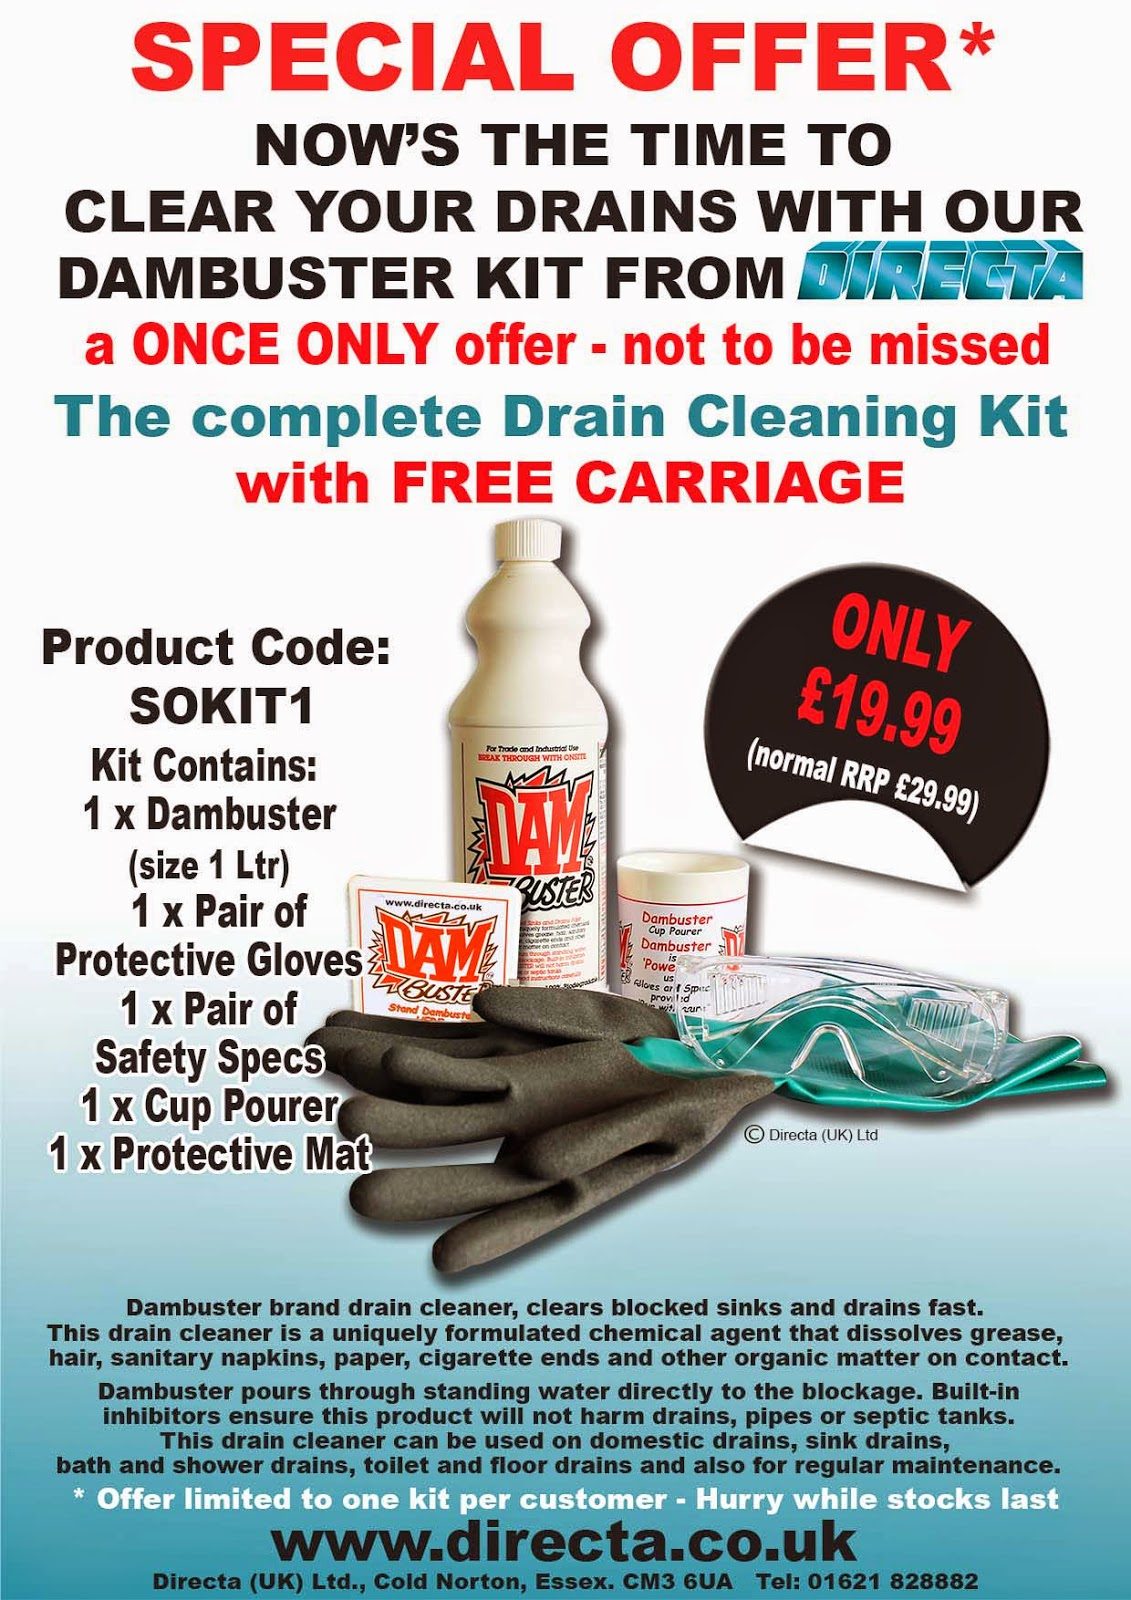 http://www.directa.co.uk/dambuster-cleaning-kit?search=sokit1